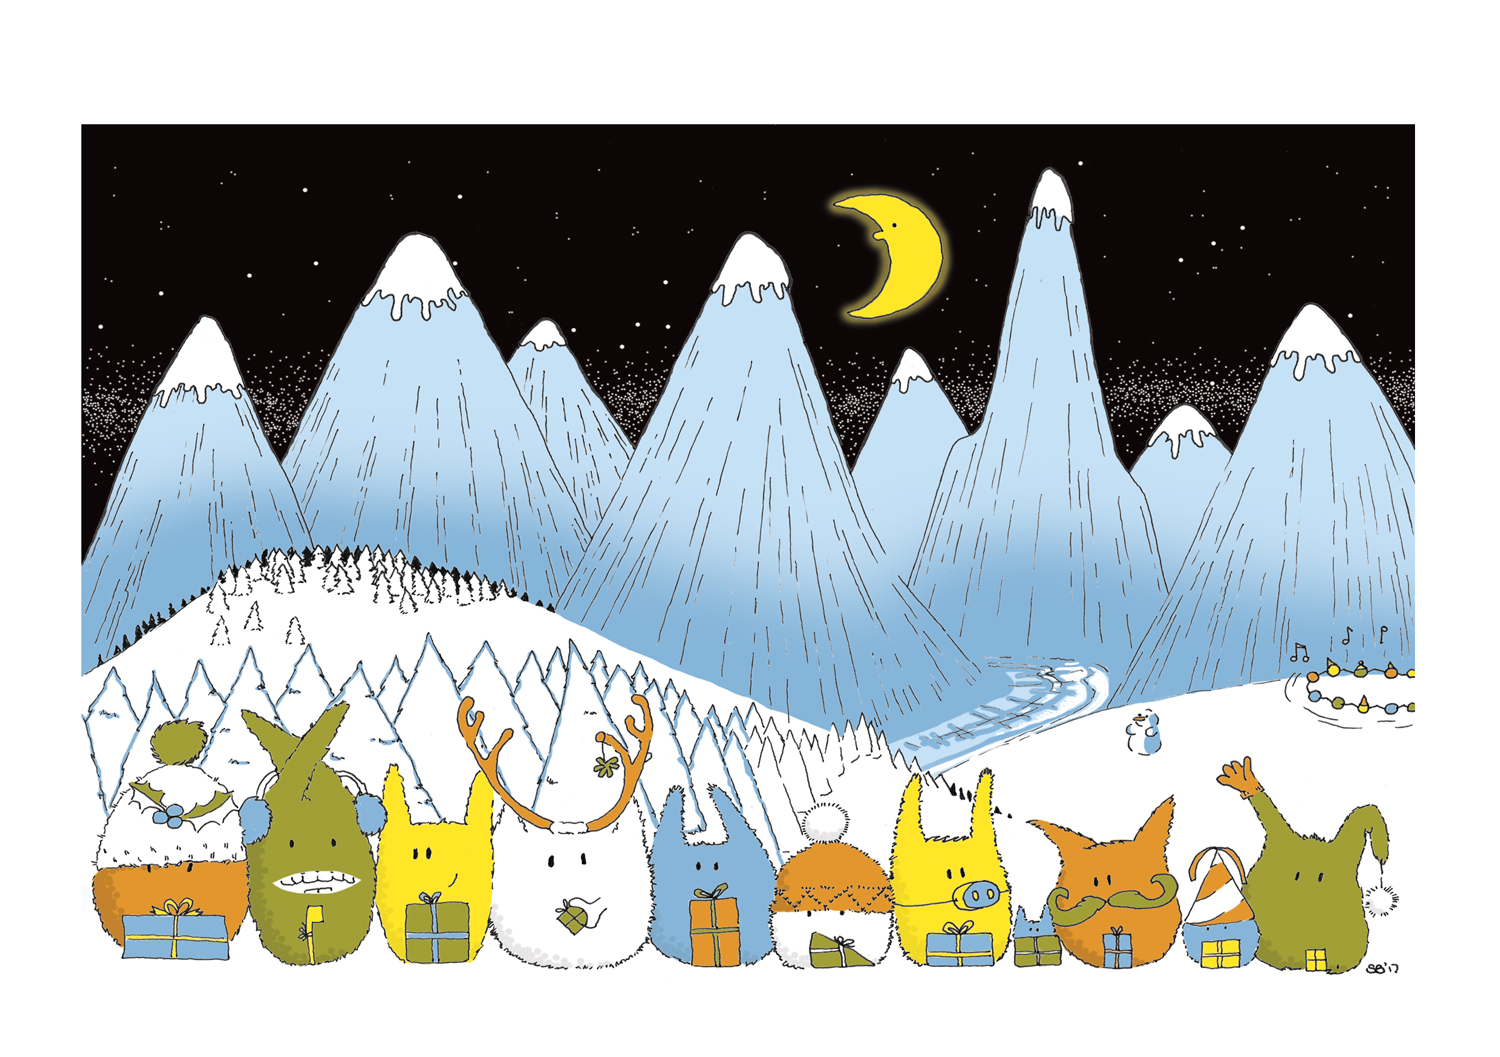 inkymotes winter holiday scene in the mountains in the snow illustrated by sally barnett